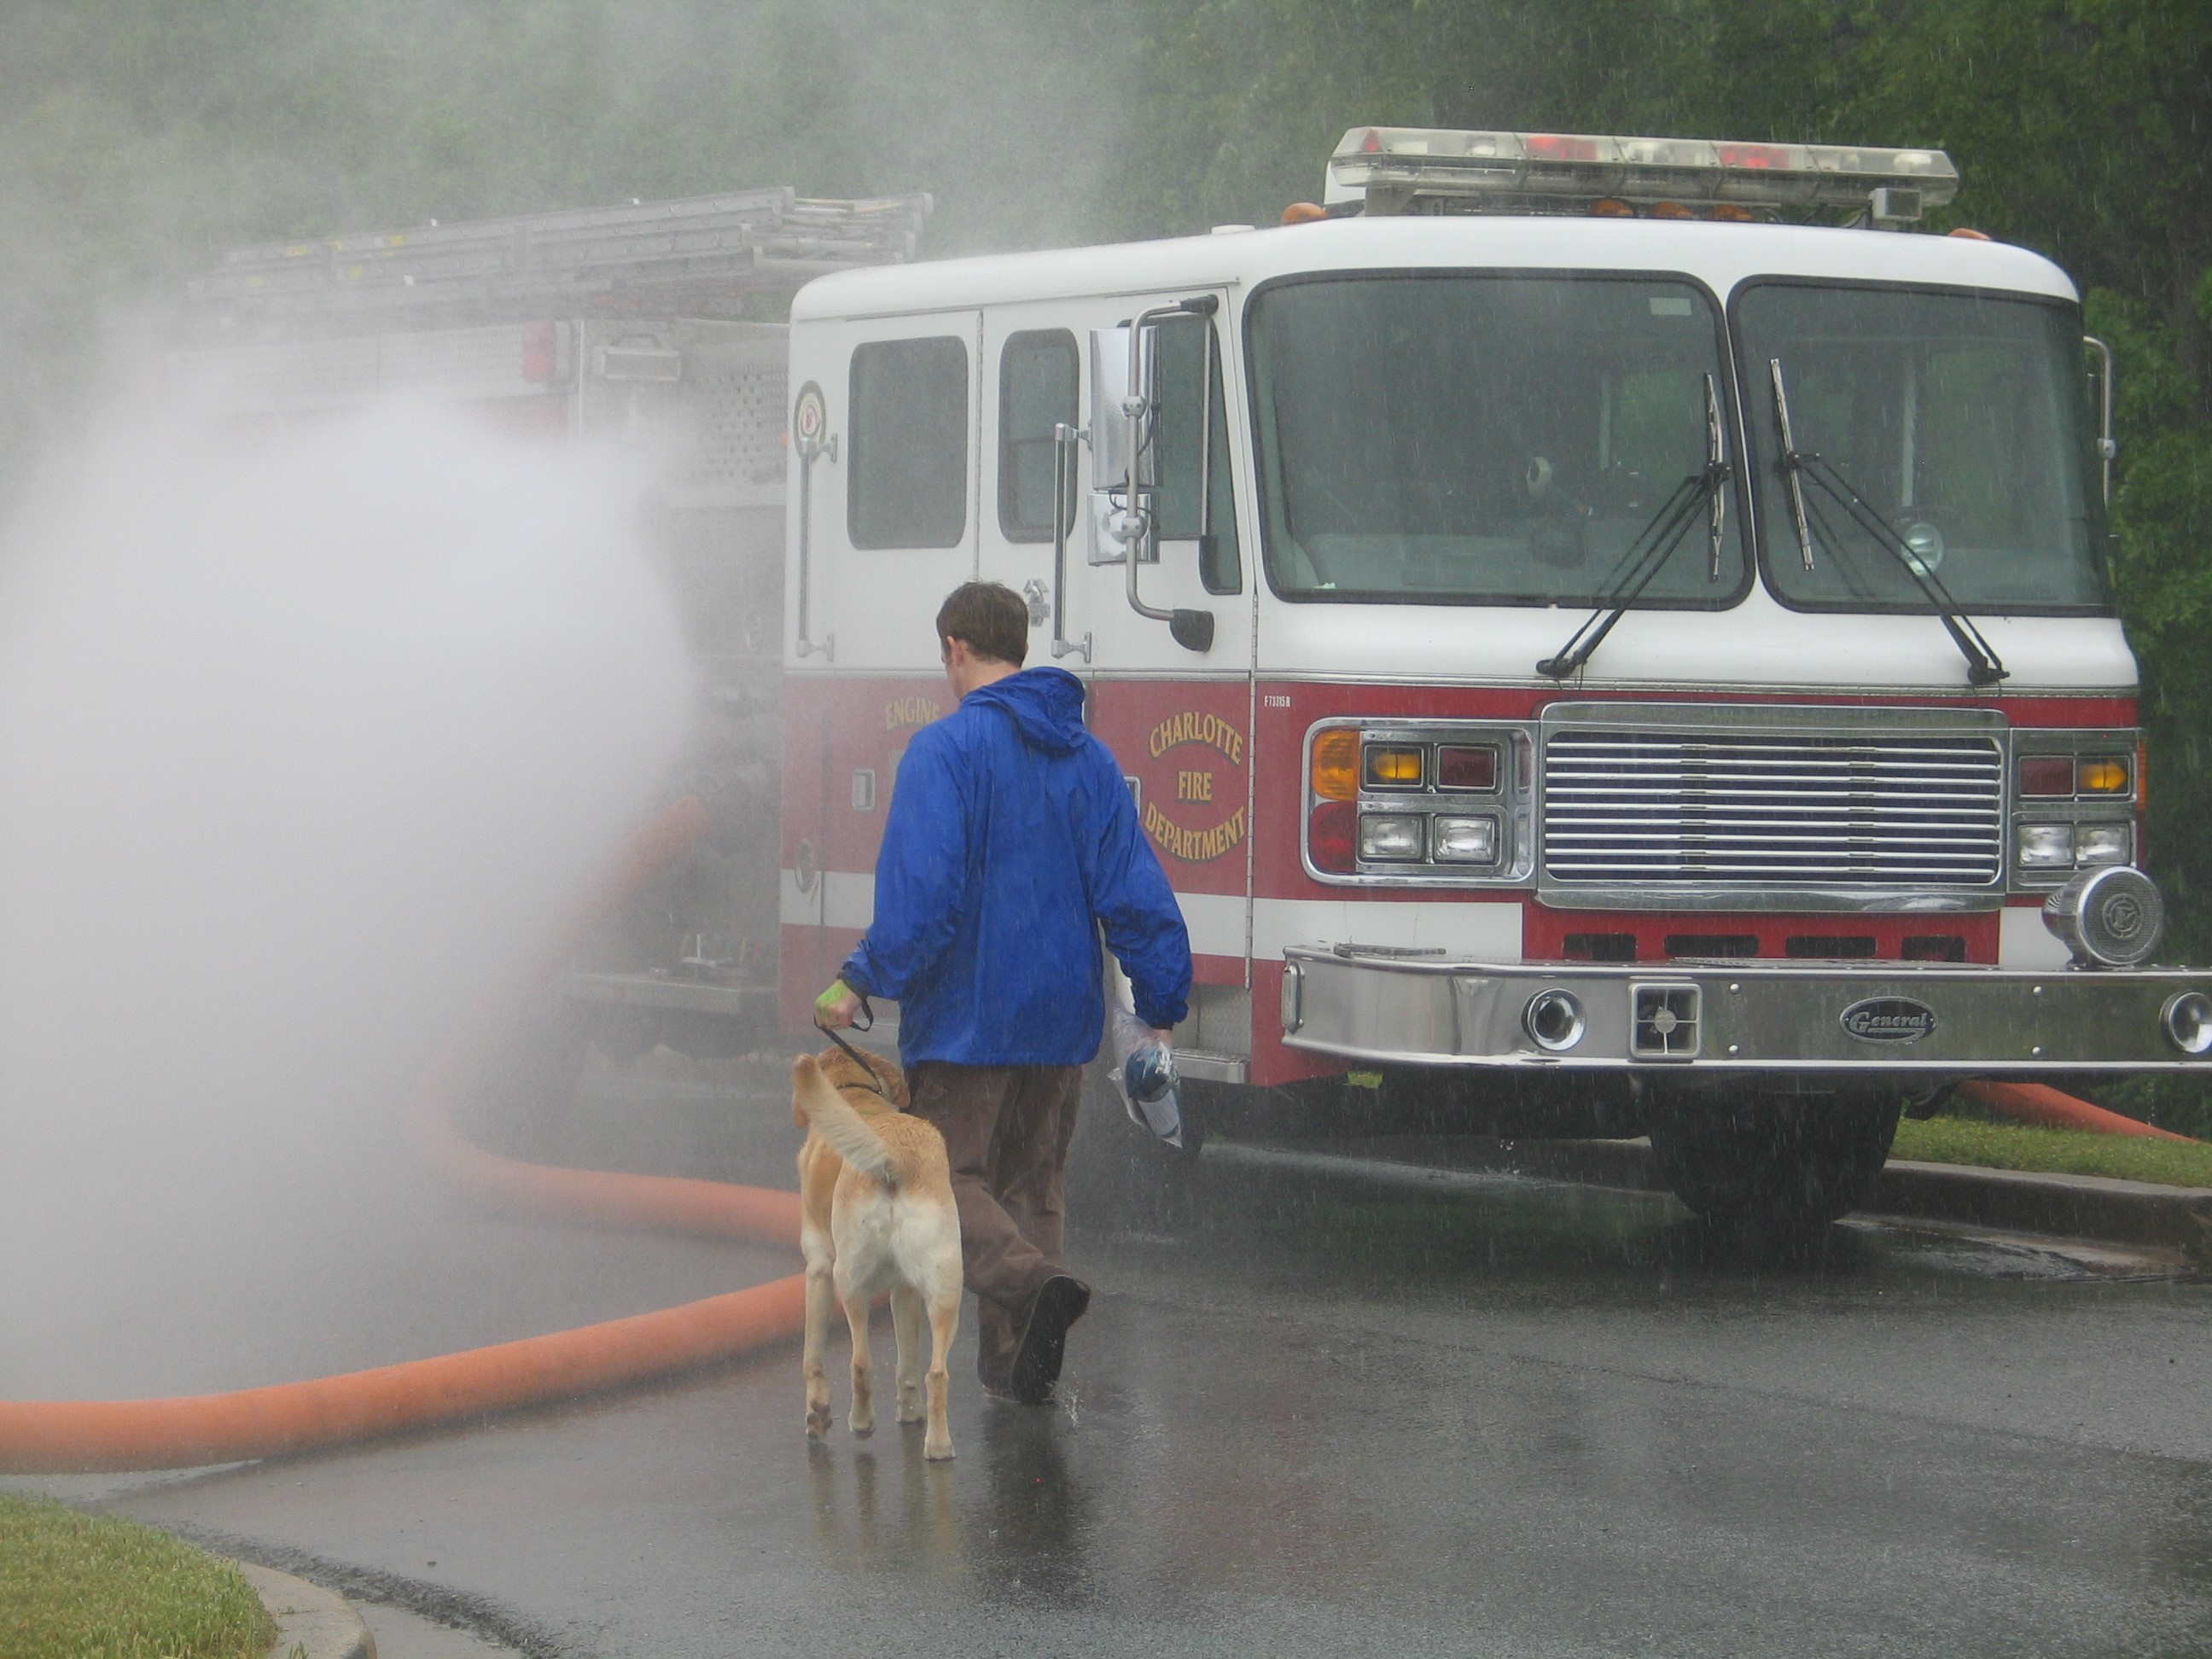 Dog walking with person near a firetruck